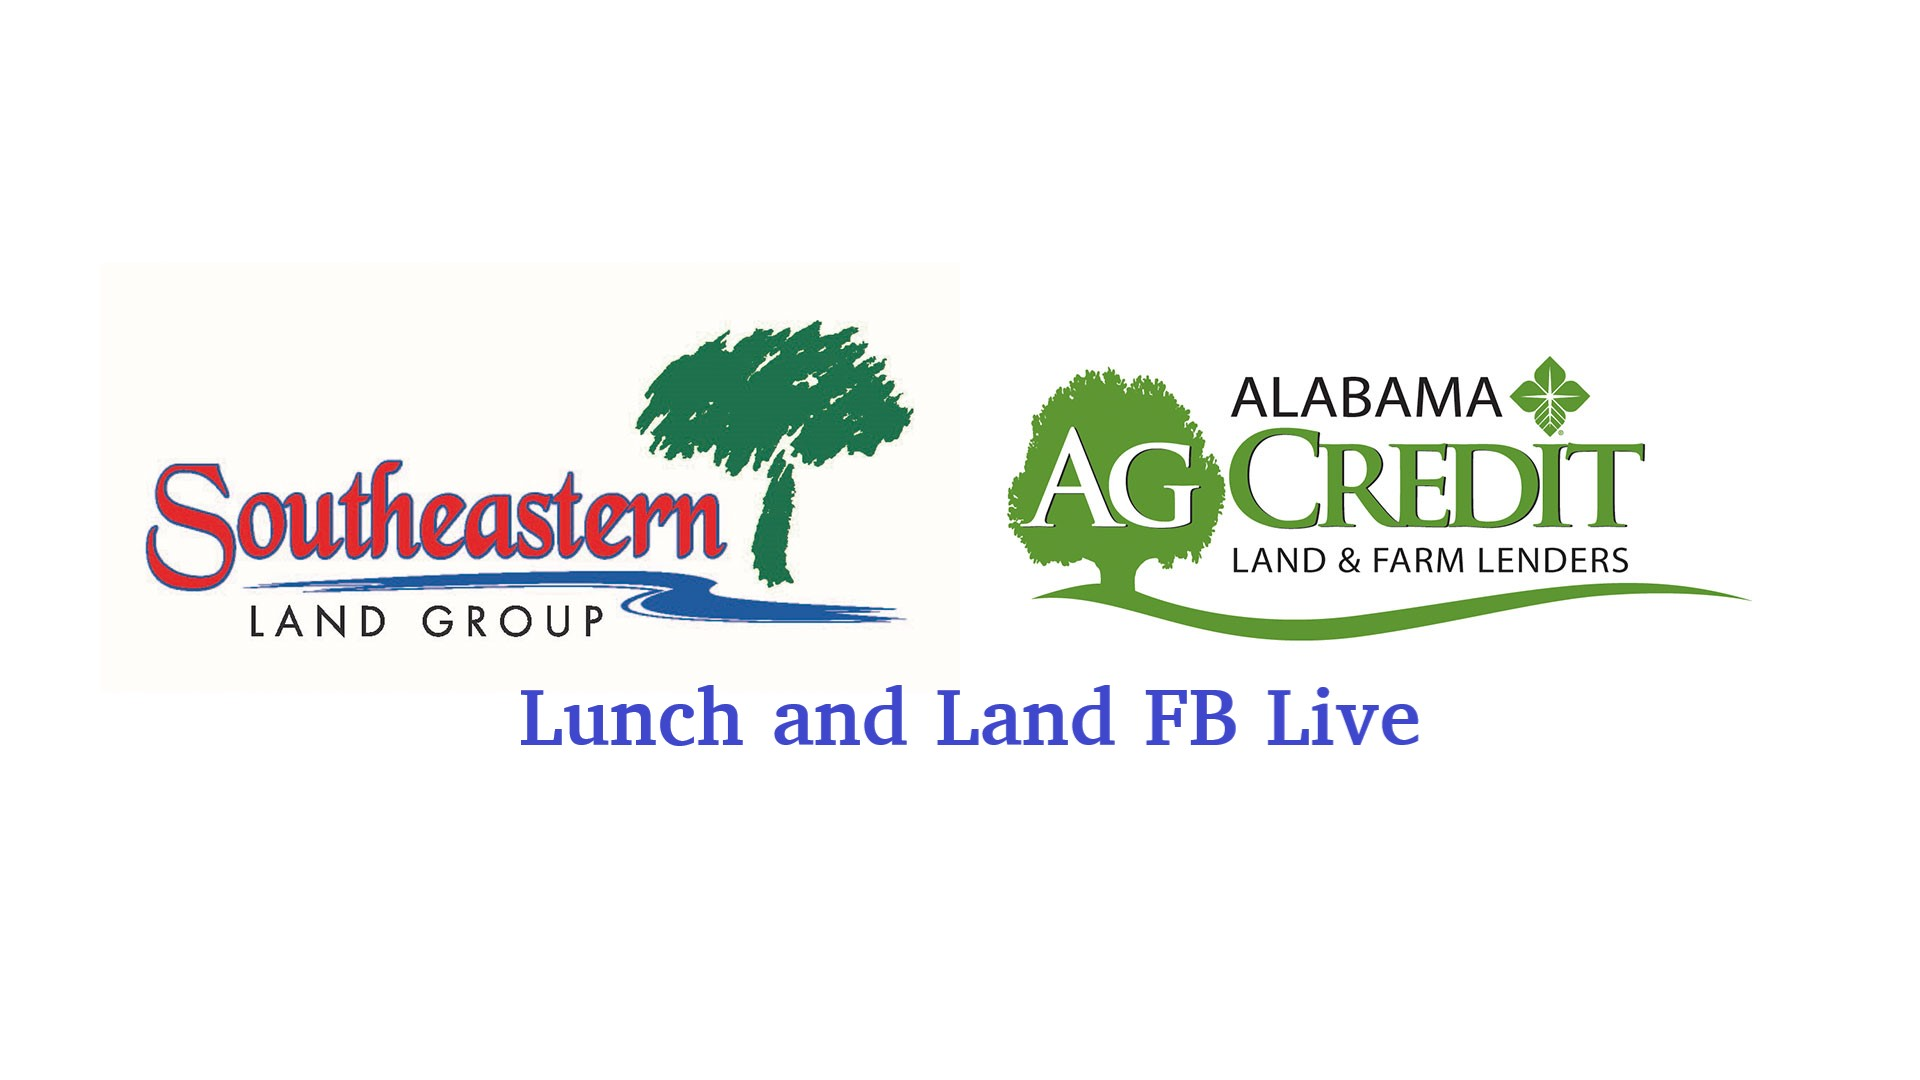 Lunch and Land FB LIve- Land for Sale in Alabama